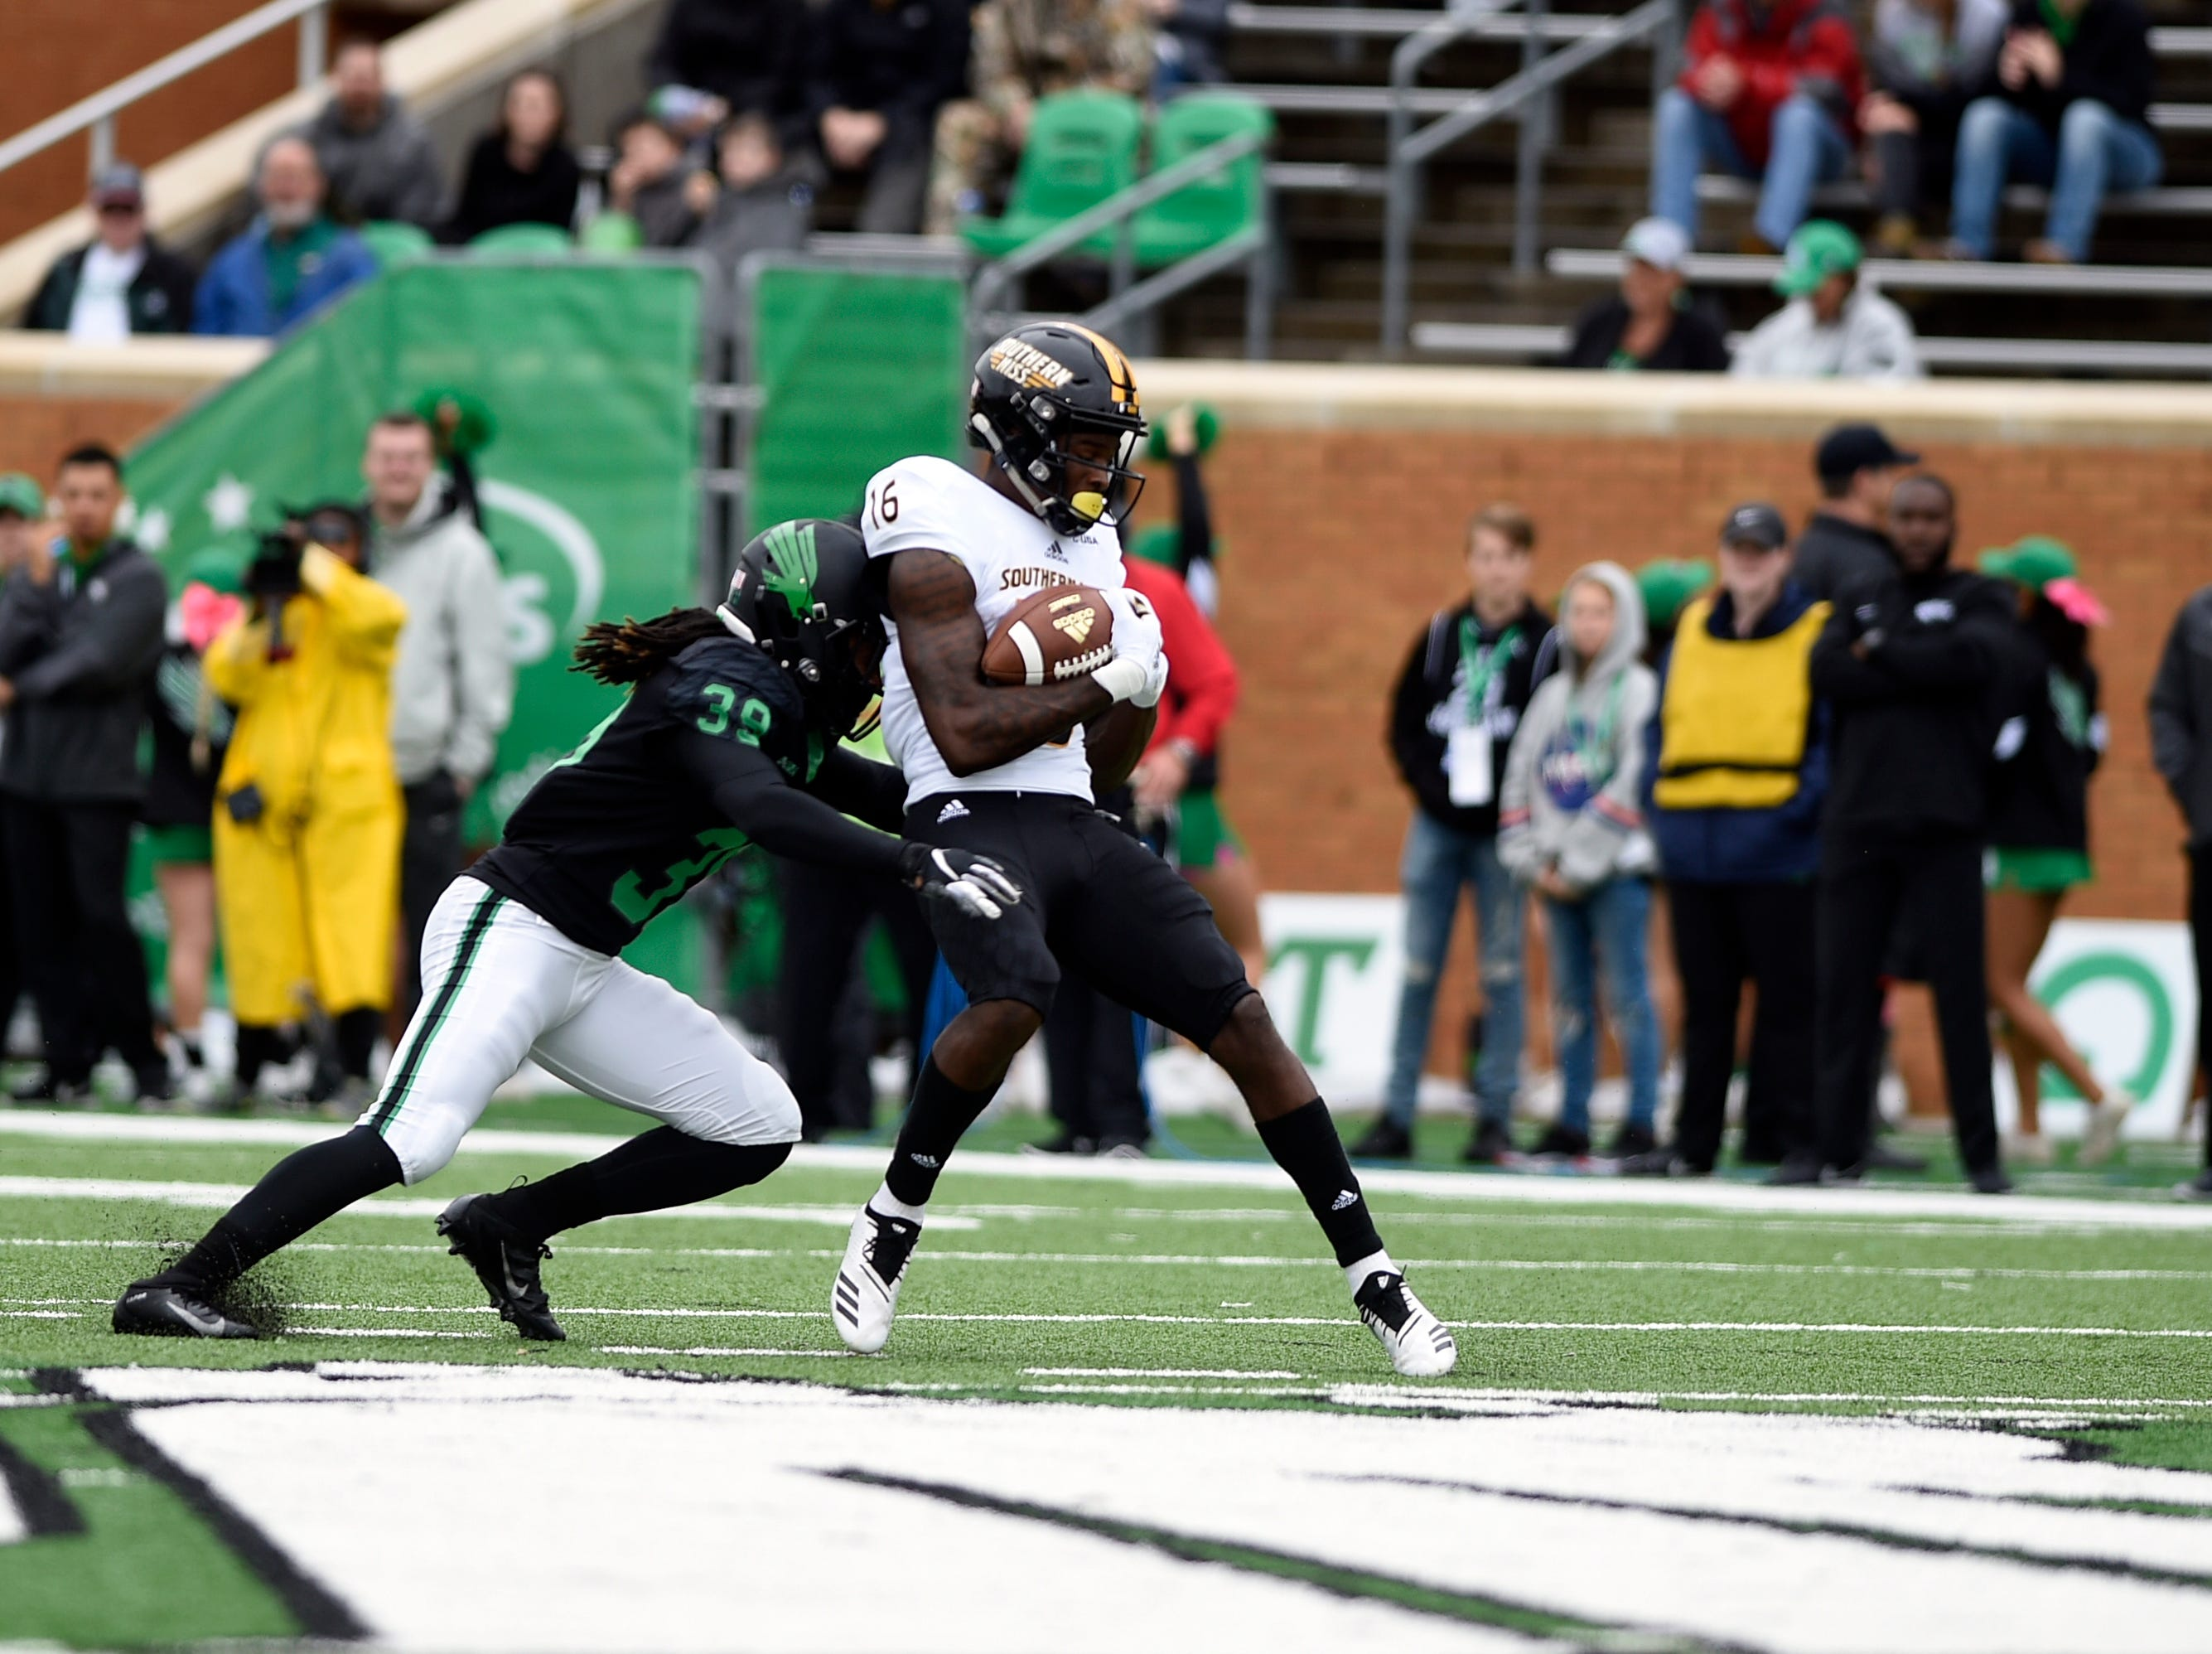 North Texas defensive back Jameel Moore (39) tackles Southern Miss wide receiver Quez Watkins (16) during an NCAA college football game at Apogee Stadium in Denton, Texas on Saturday, Oct. 13, 2018.